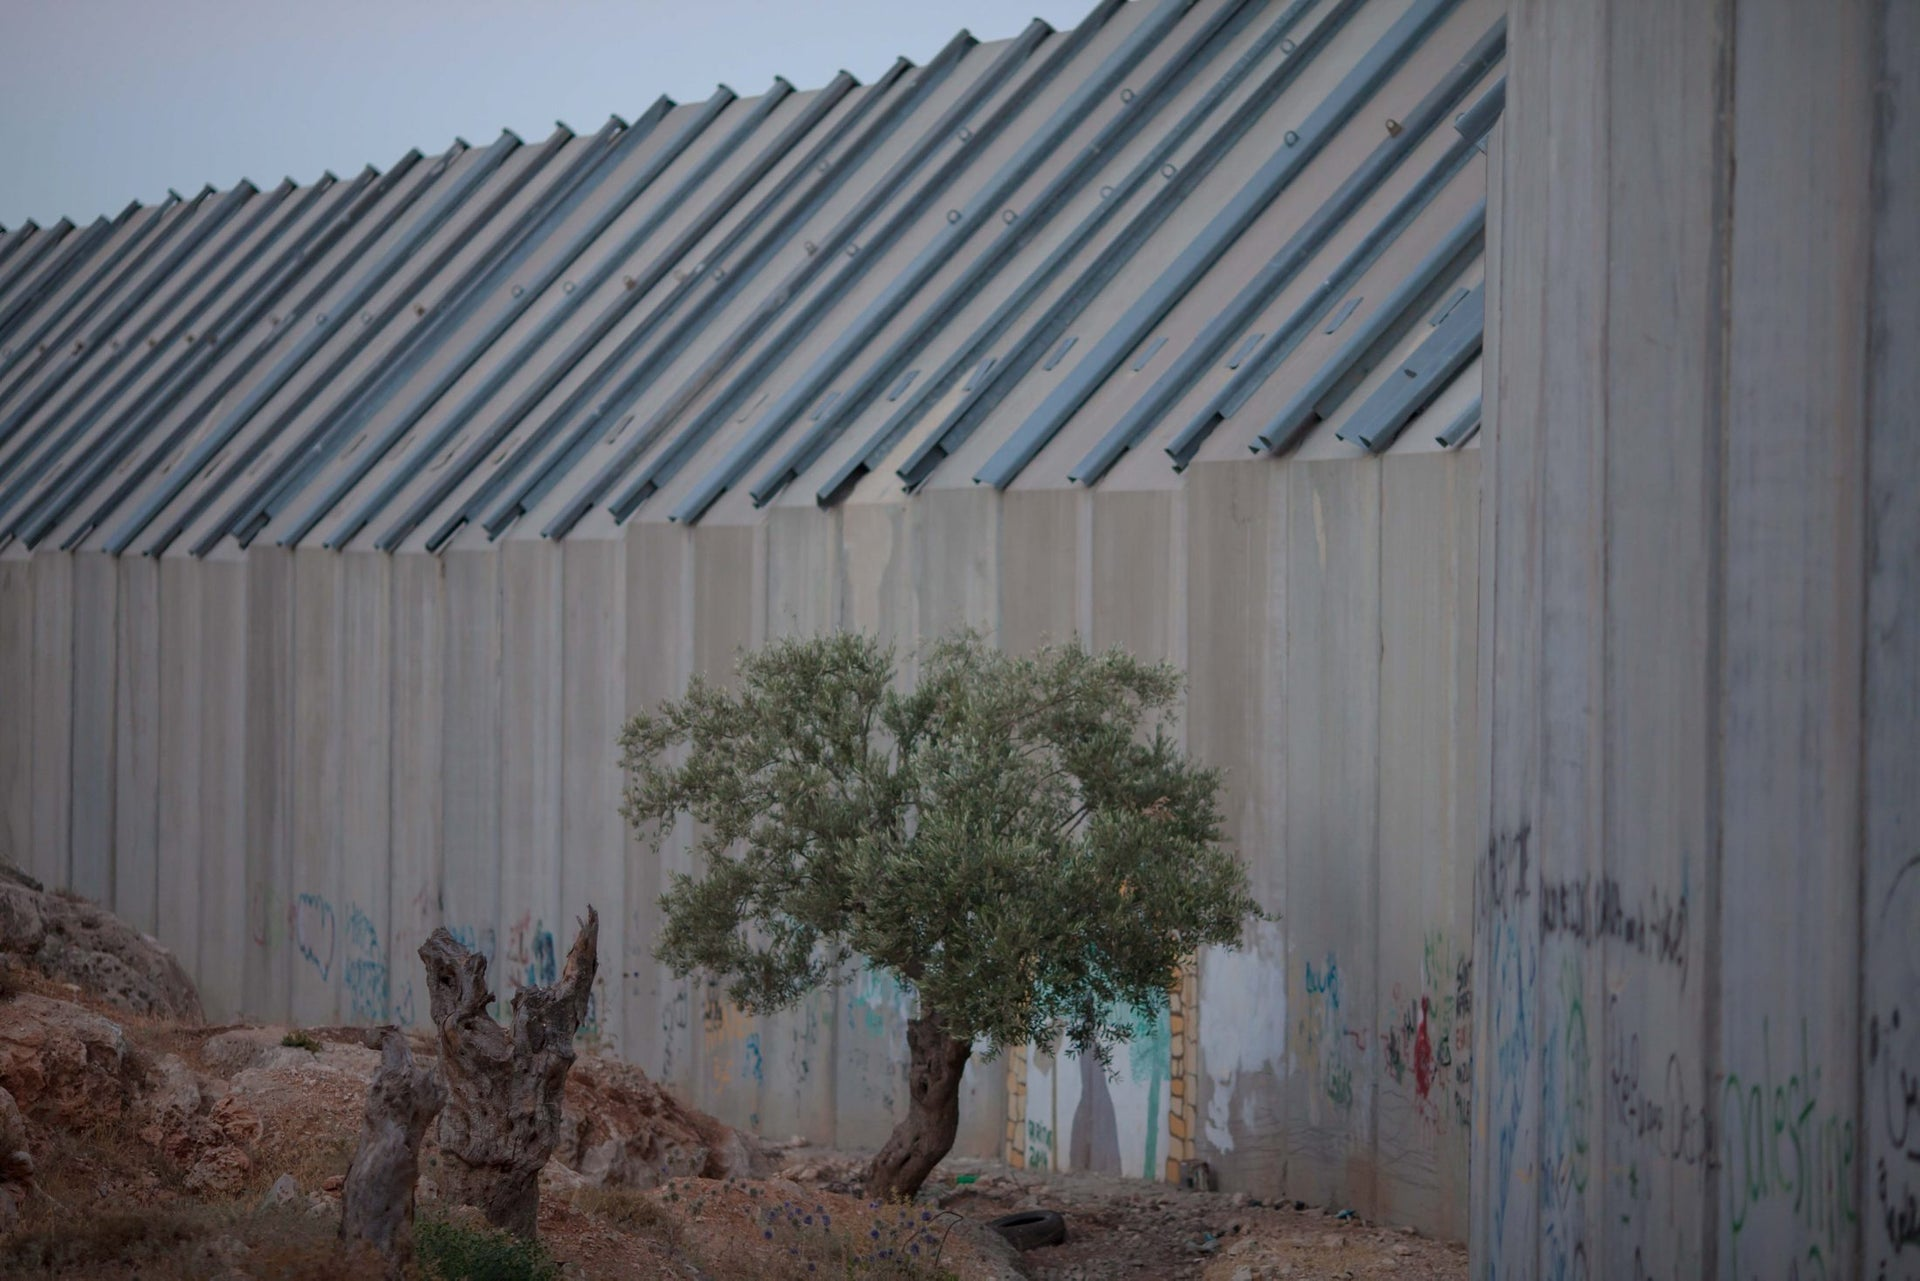 The separation barrier between Israel and the West Bank near Bayt Jala, south of Jerusalem.